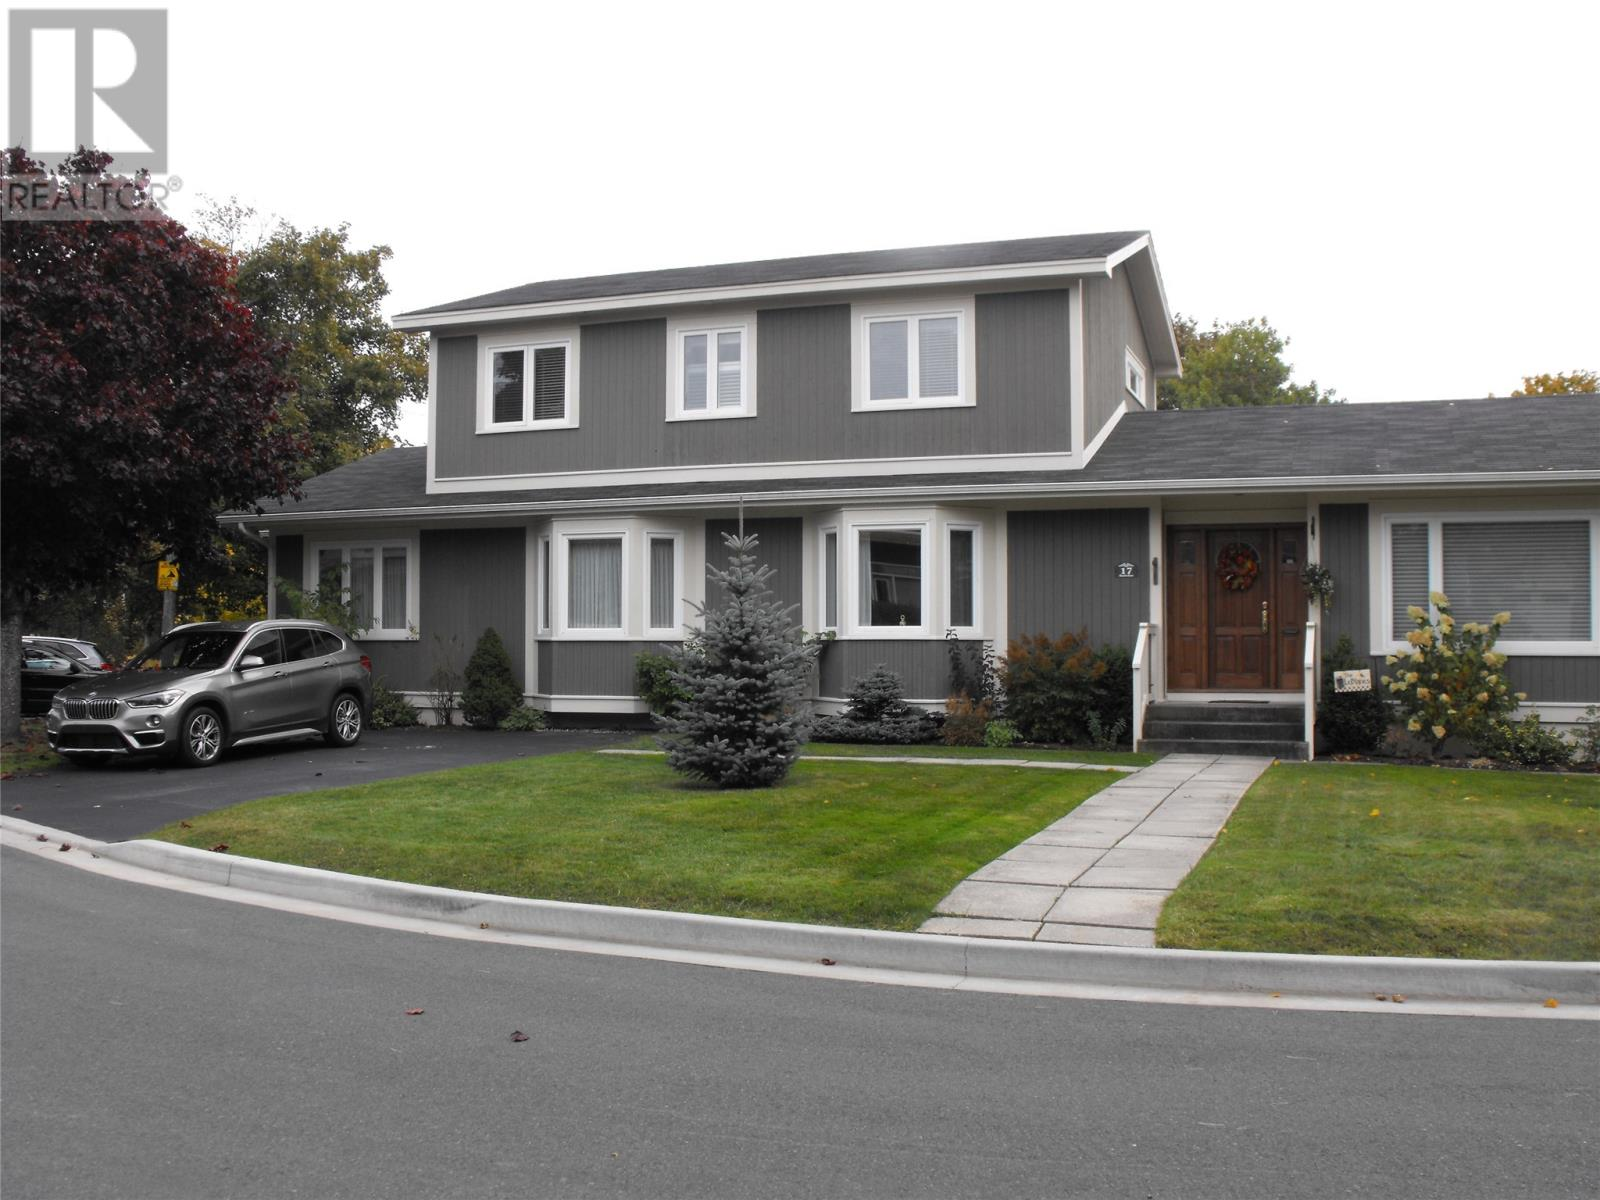 Removed: 17 Rostellan Street, St Johns, NL - Removed on 2018-08-31 10:08:07